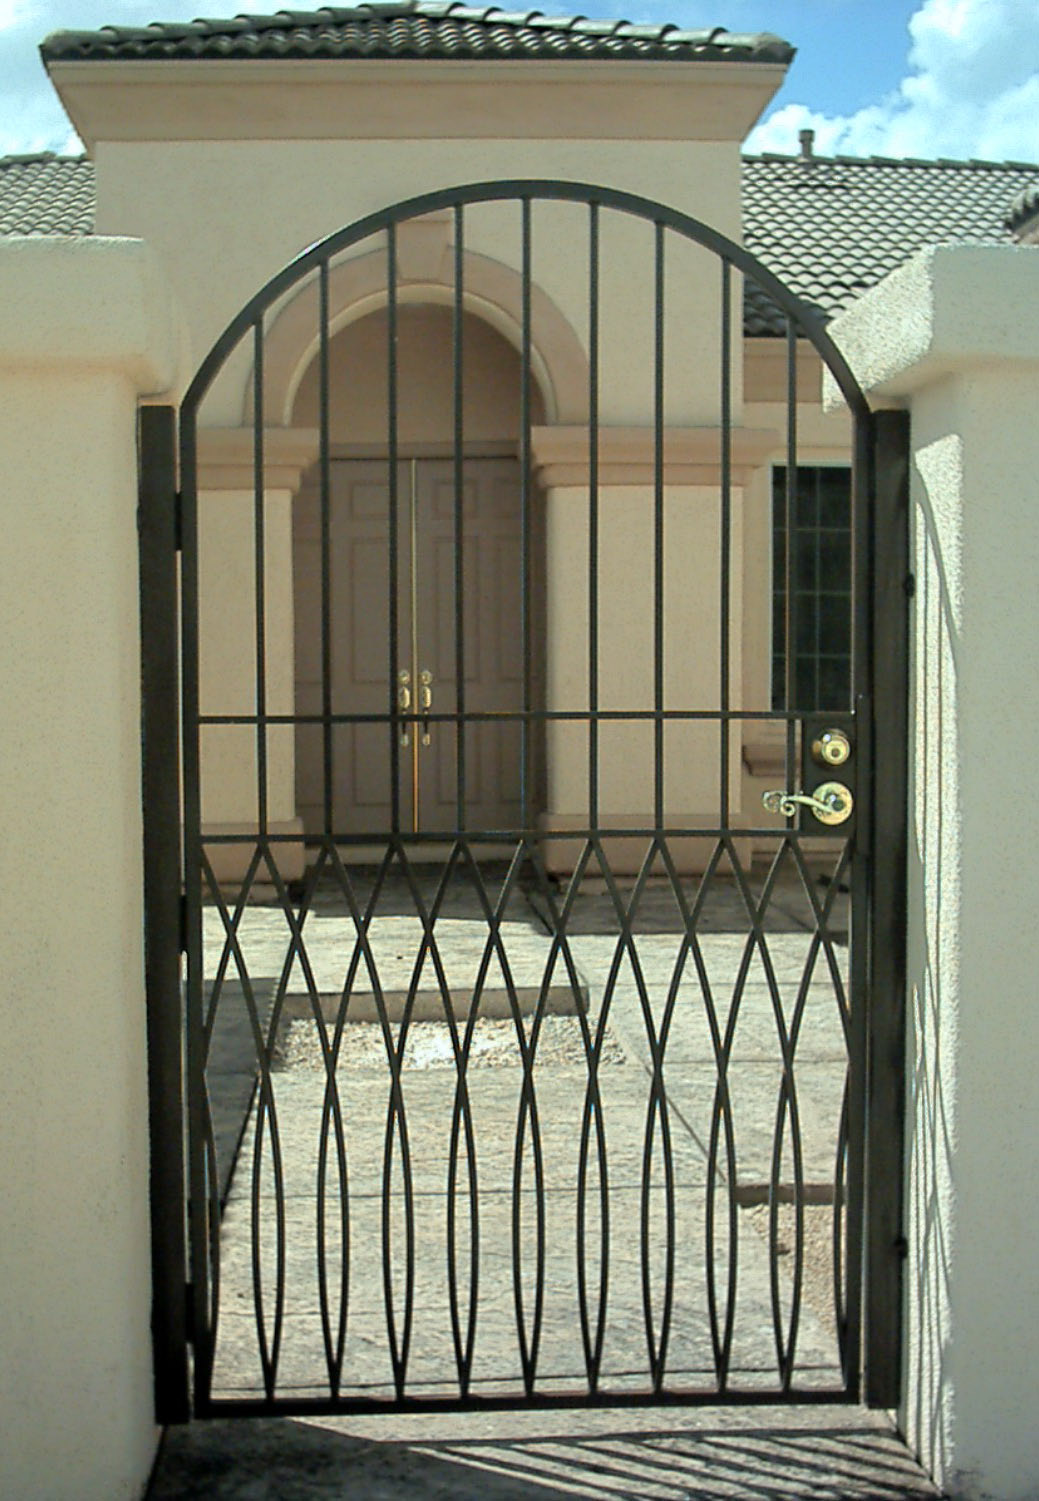 Gate Designs For Homes Iron gate designs for homes homesfeed iron security gate for home with handle feature workwithnaturefo